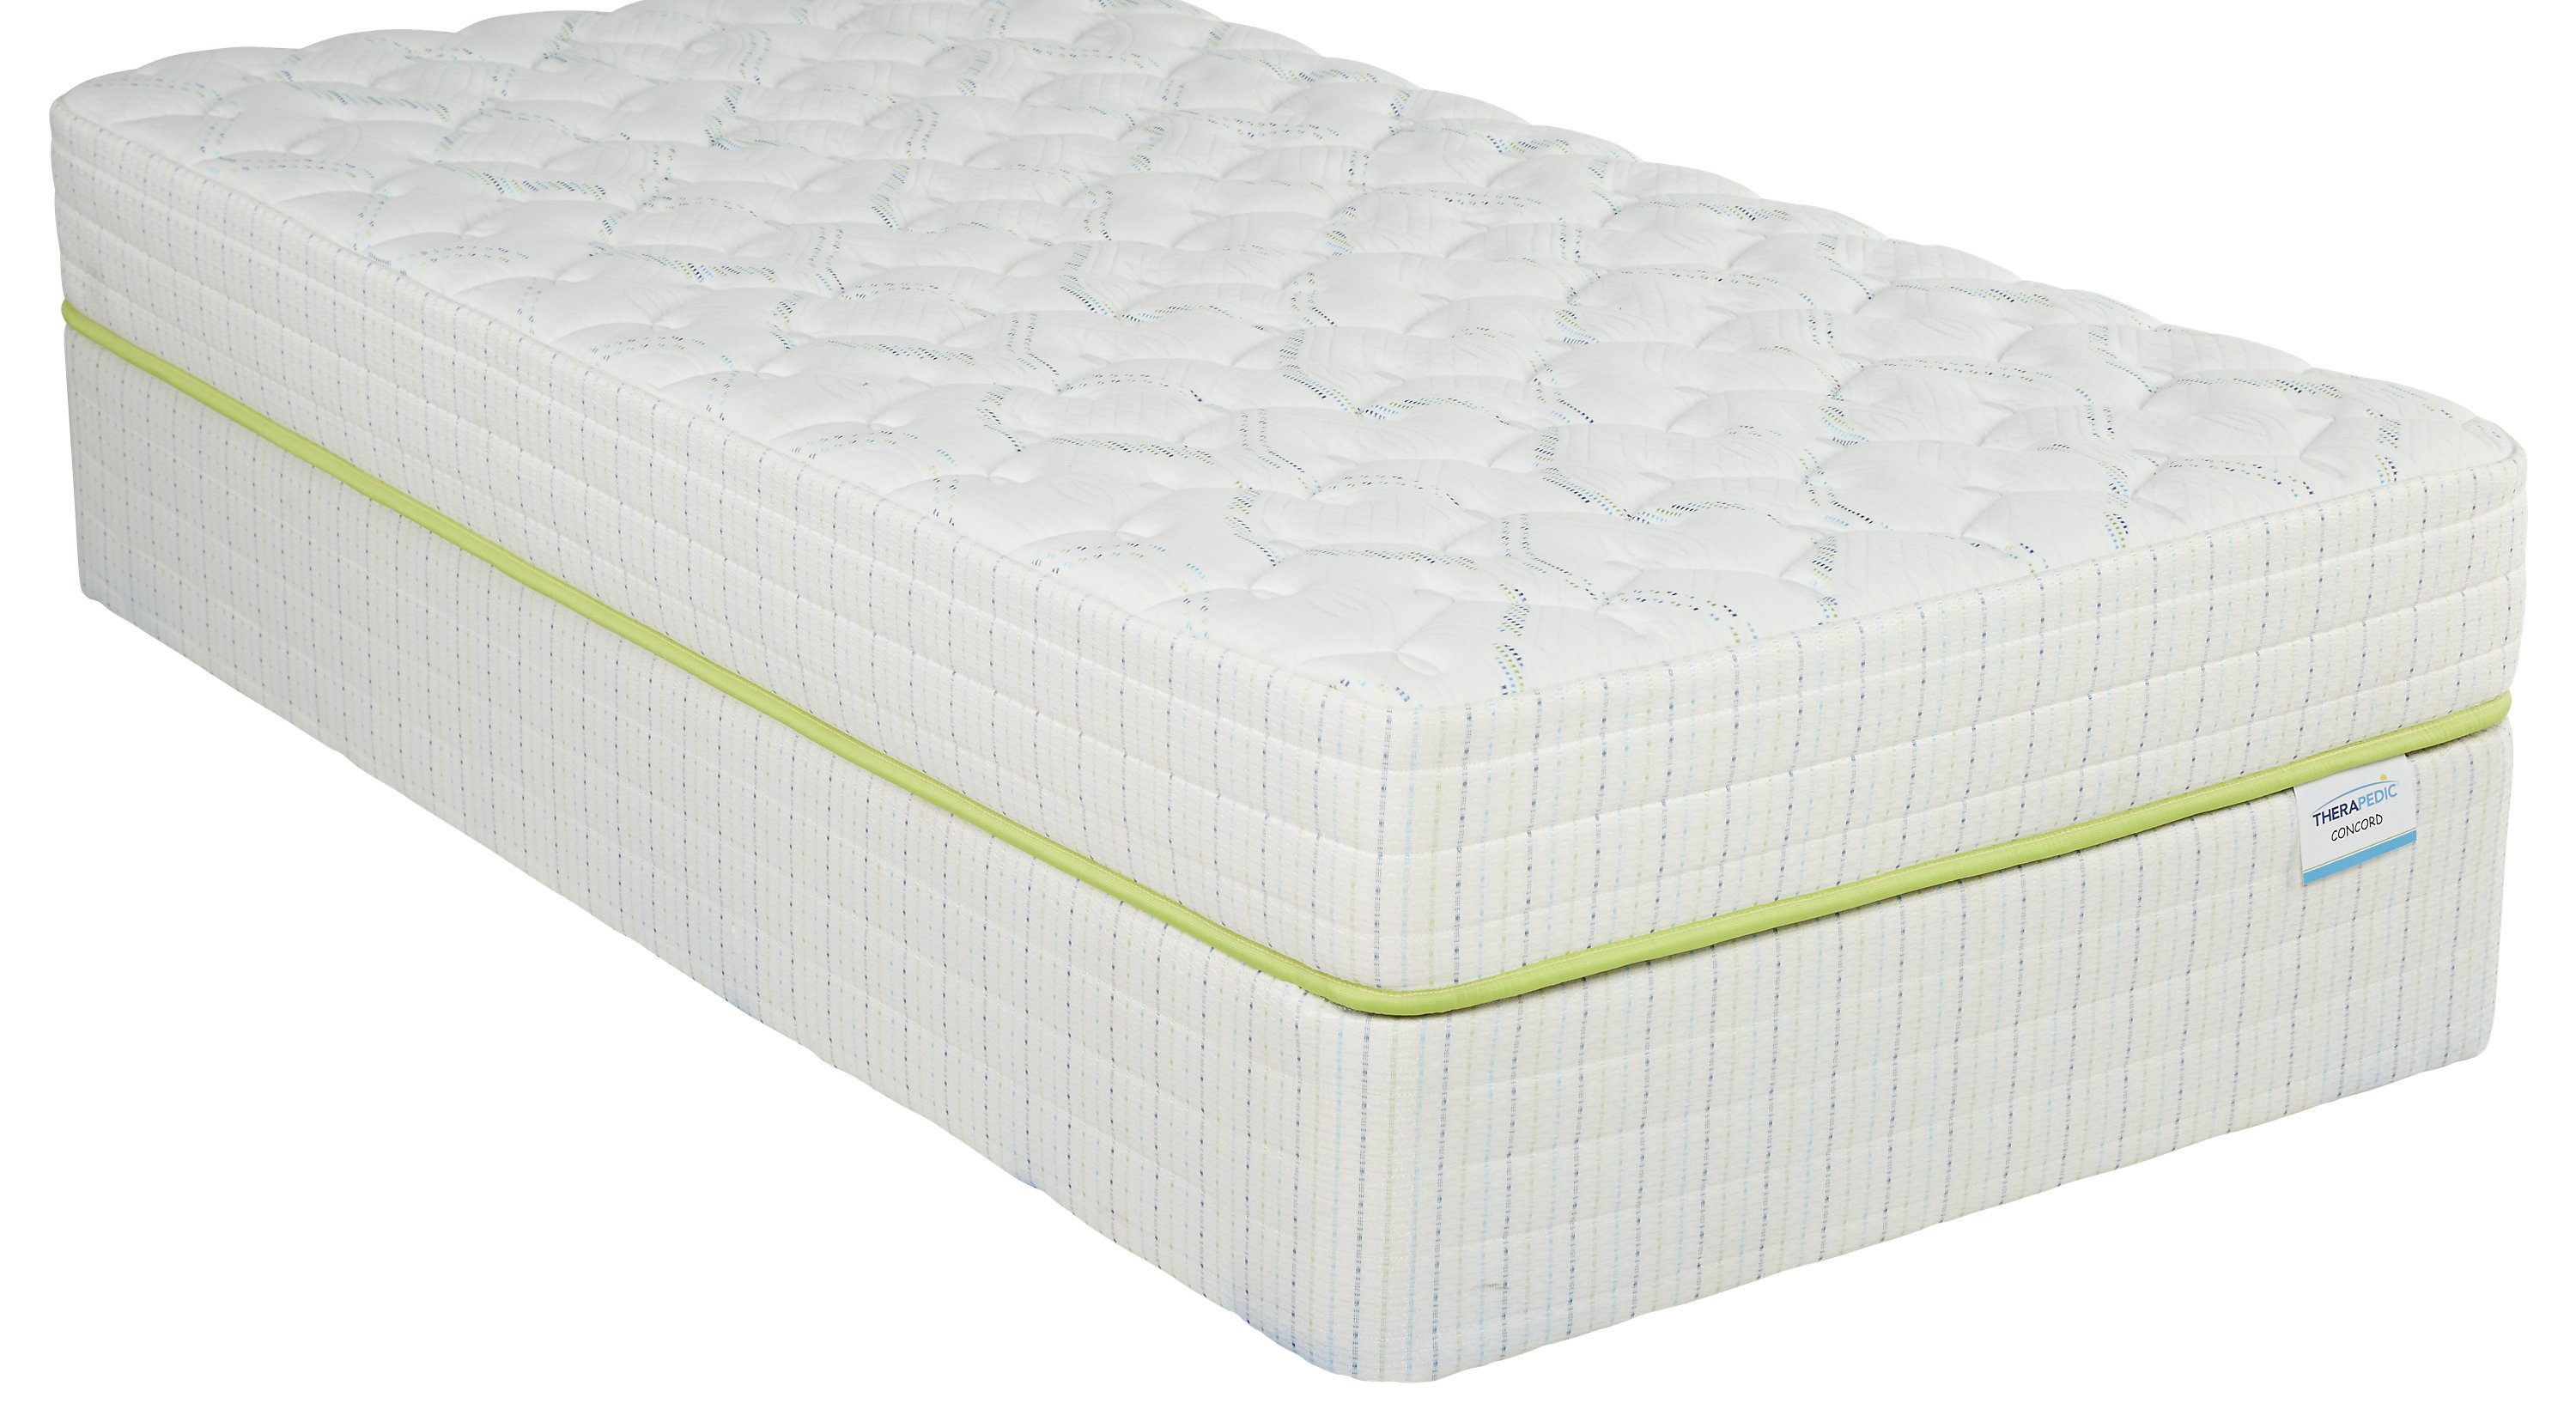 Cheap Twin Mattress And Box Springs Twin Mattress Set Queen Twin Mattress And Boxspring Set Cheap